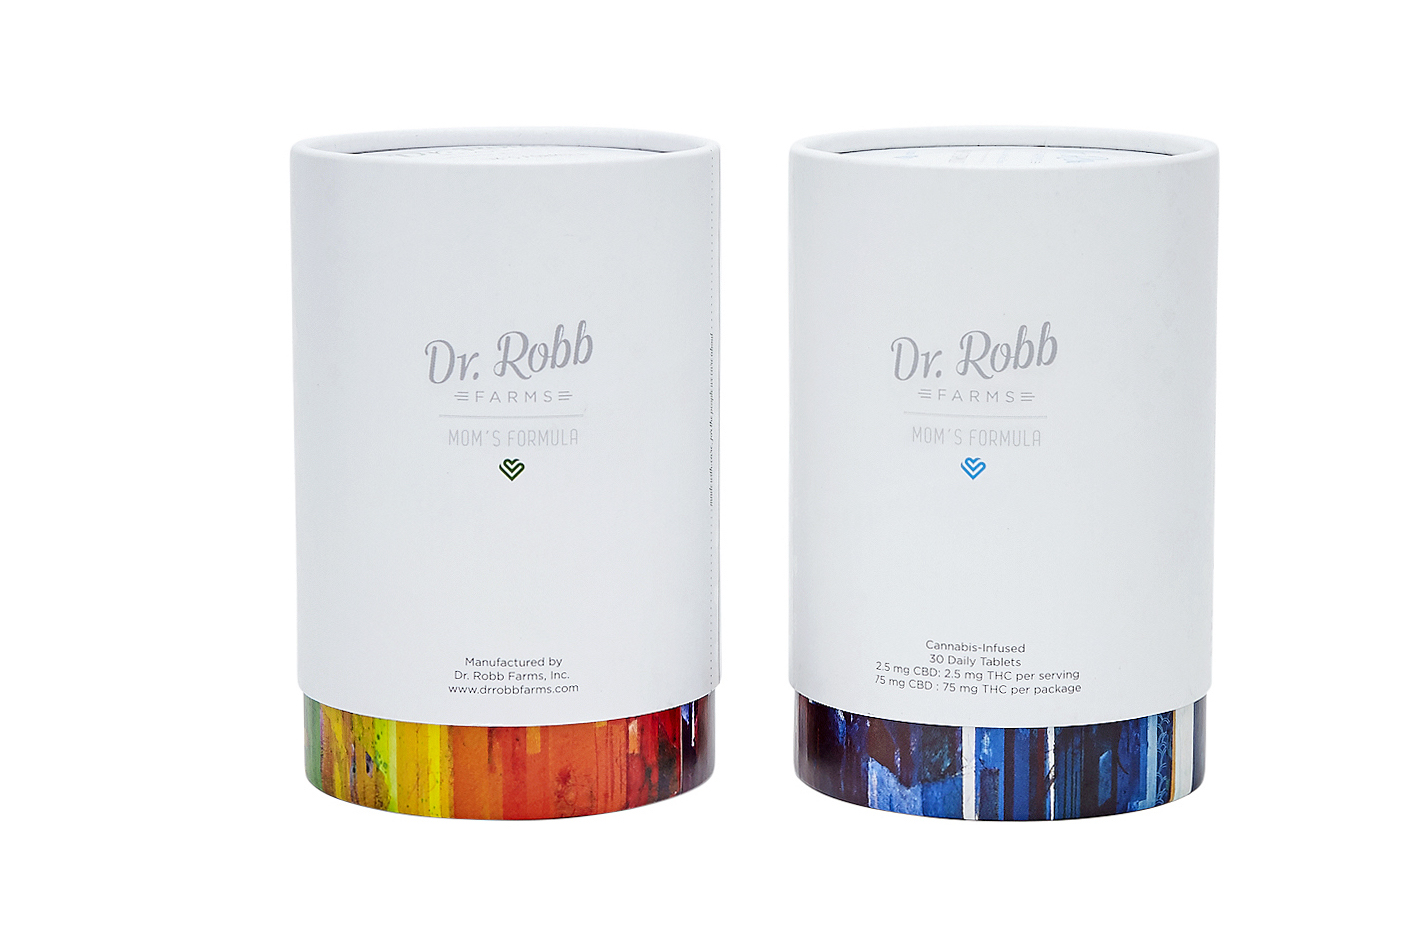 Dr. Robb's